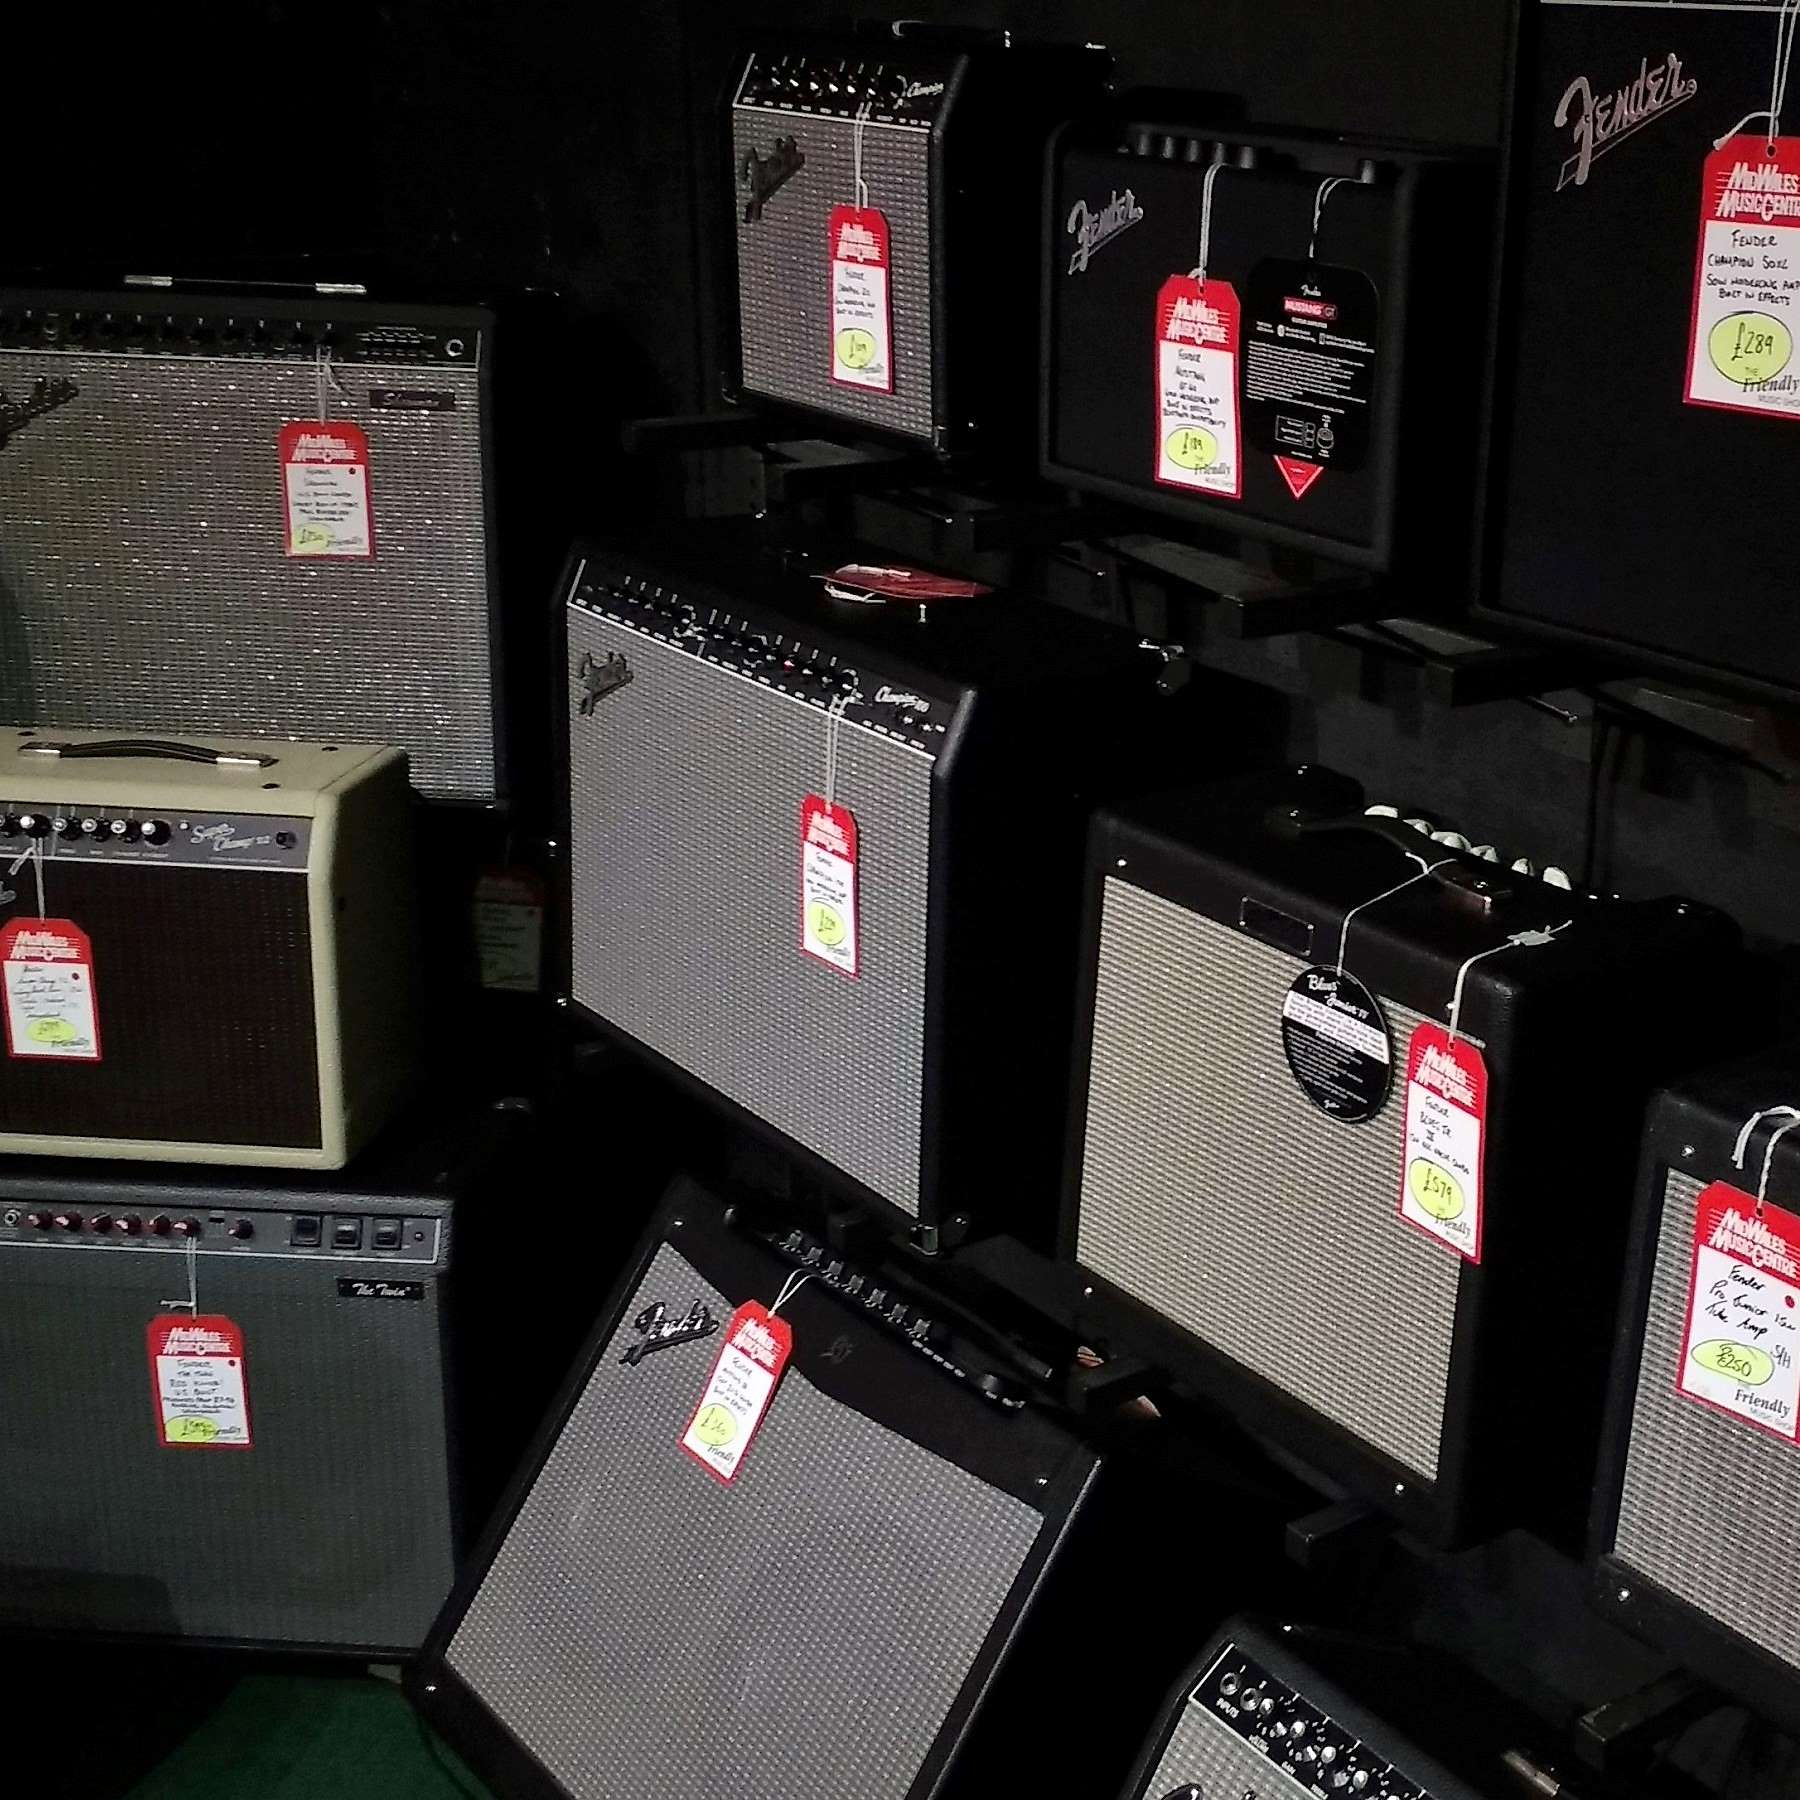 Fender amplifier display